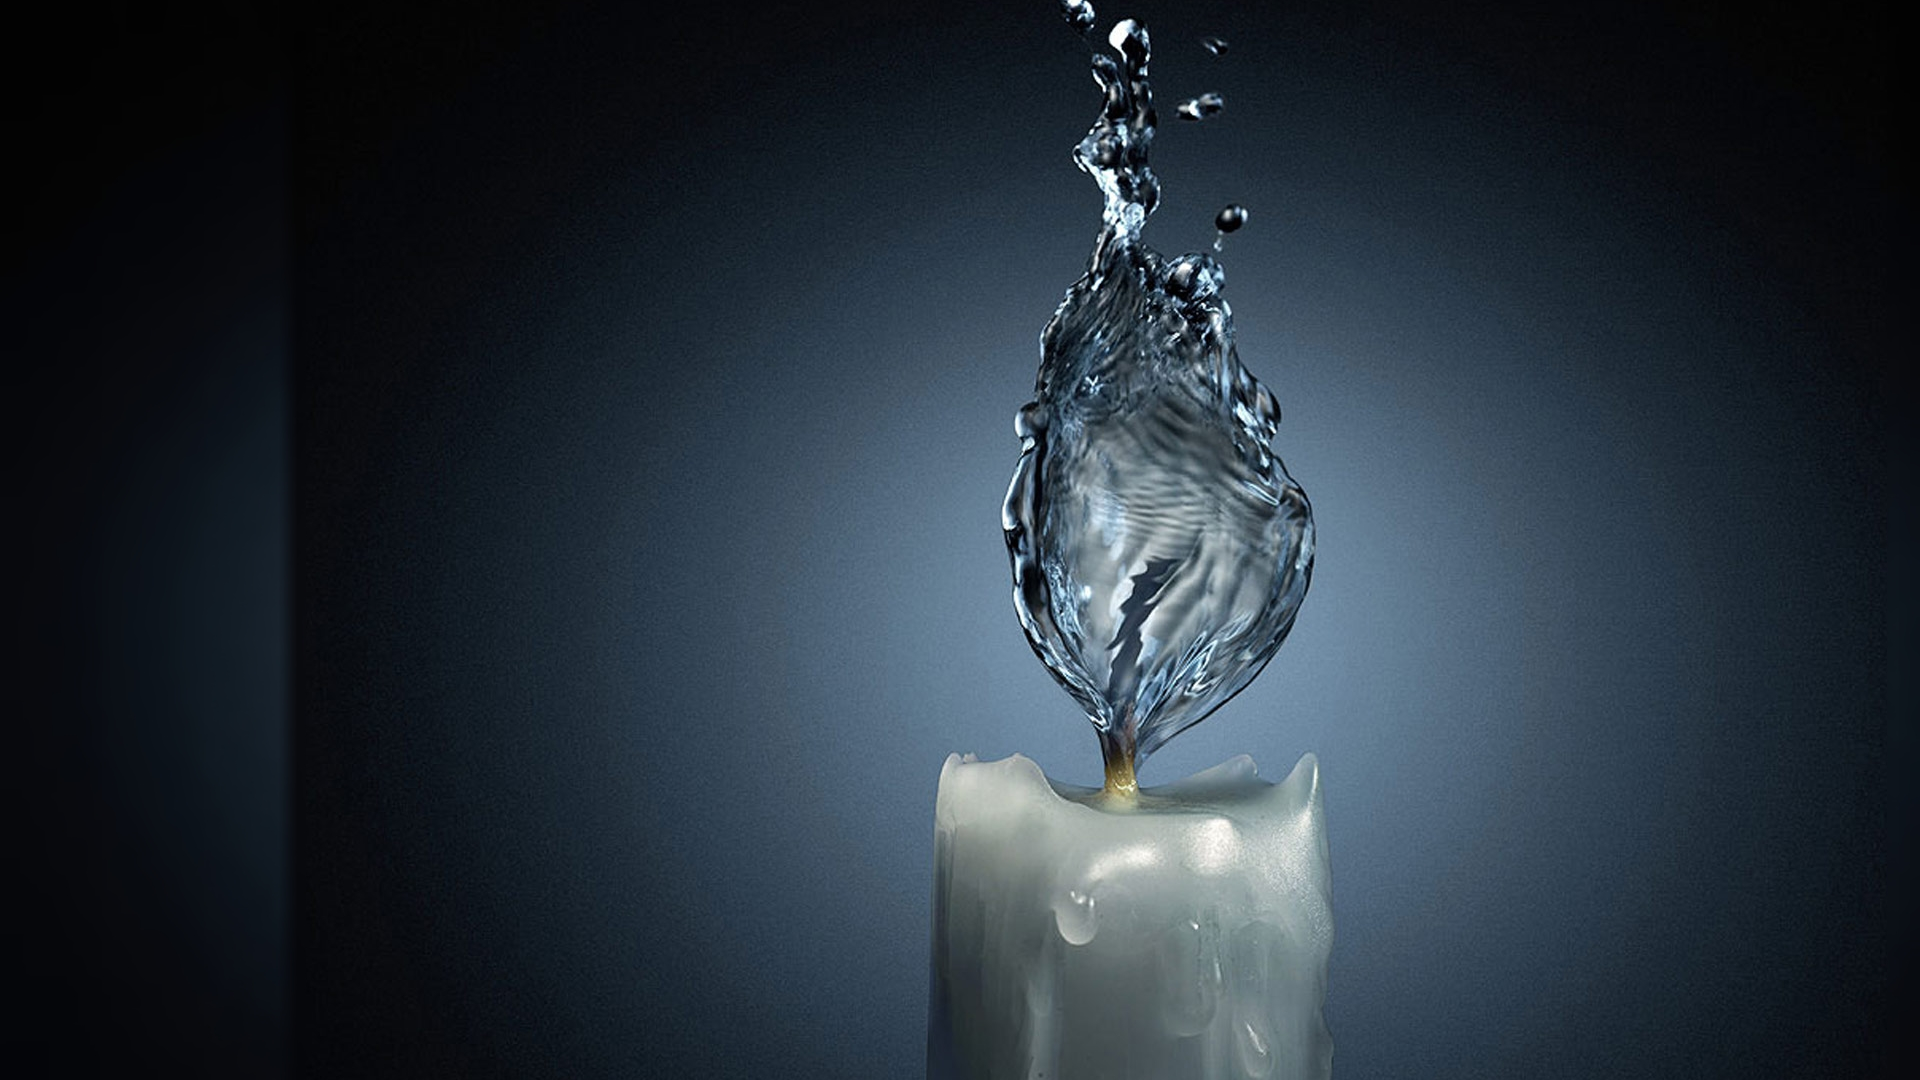 3d Liquid Abstract Wallpaper Candle Water Wallpaper Hd Wallpaper Wallpaperlepi